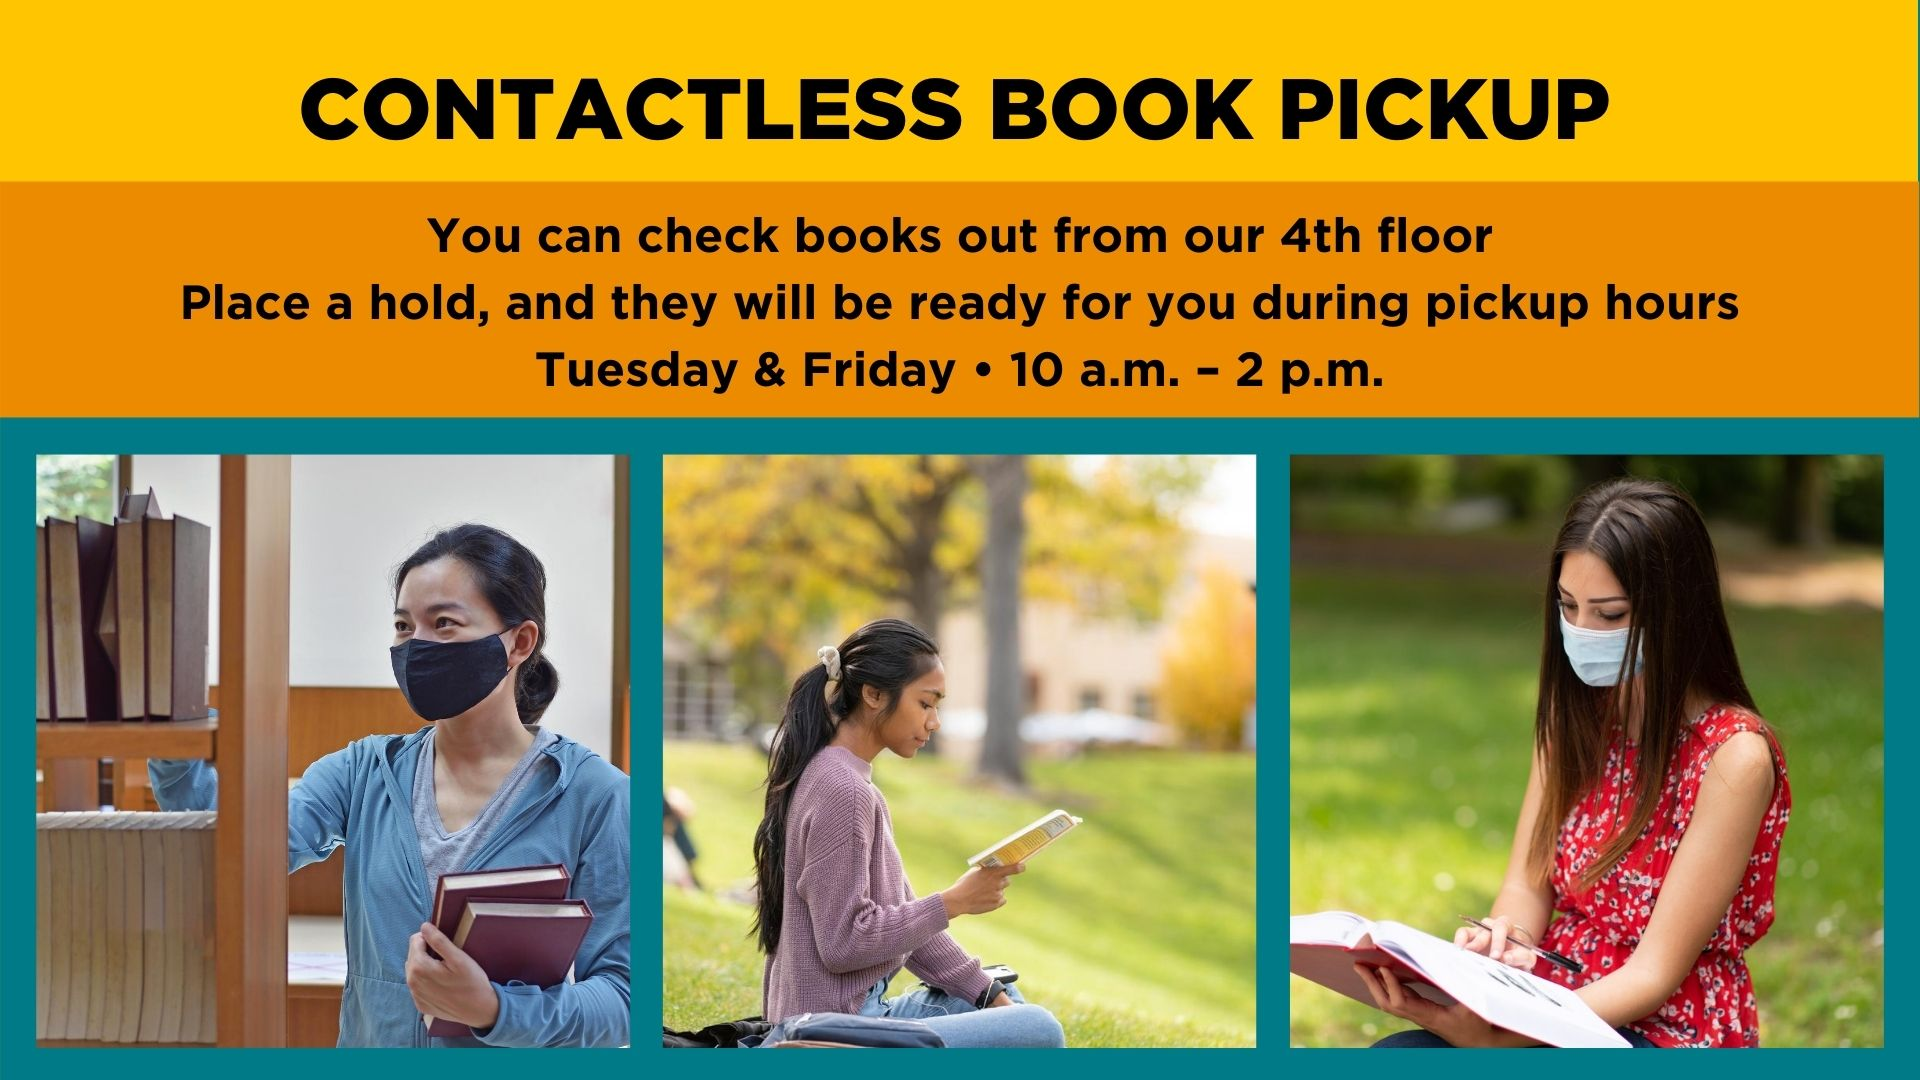 Woman in mask taking books from a library shelf, woman reading outside at UNM duck pond, woman in mask reading with a pen. Text: Contactless Book Pickup--You can check books out from our 4th floor. Place a hold, and they will be ready for you during pickup hours Tuesday & Friday 10 a.m. - 2 p.m.